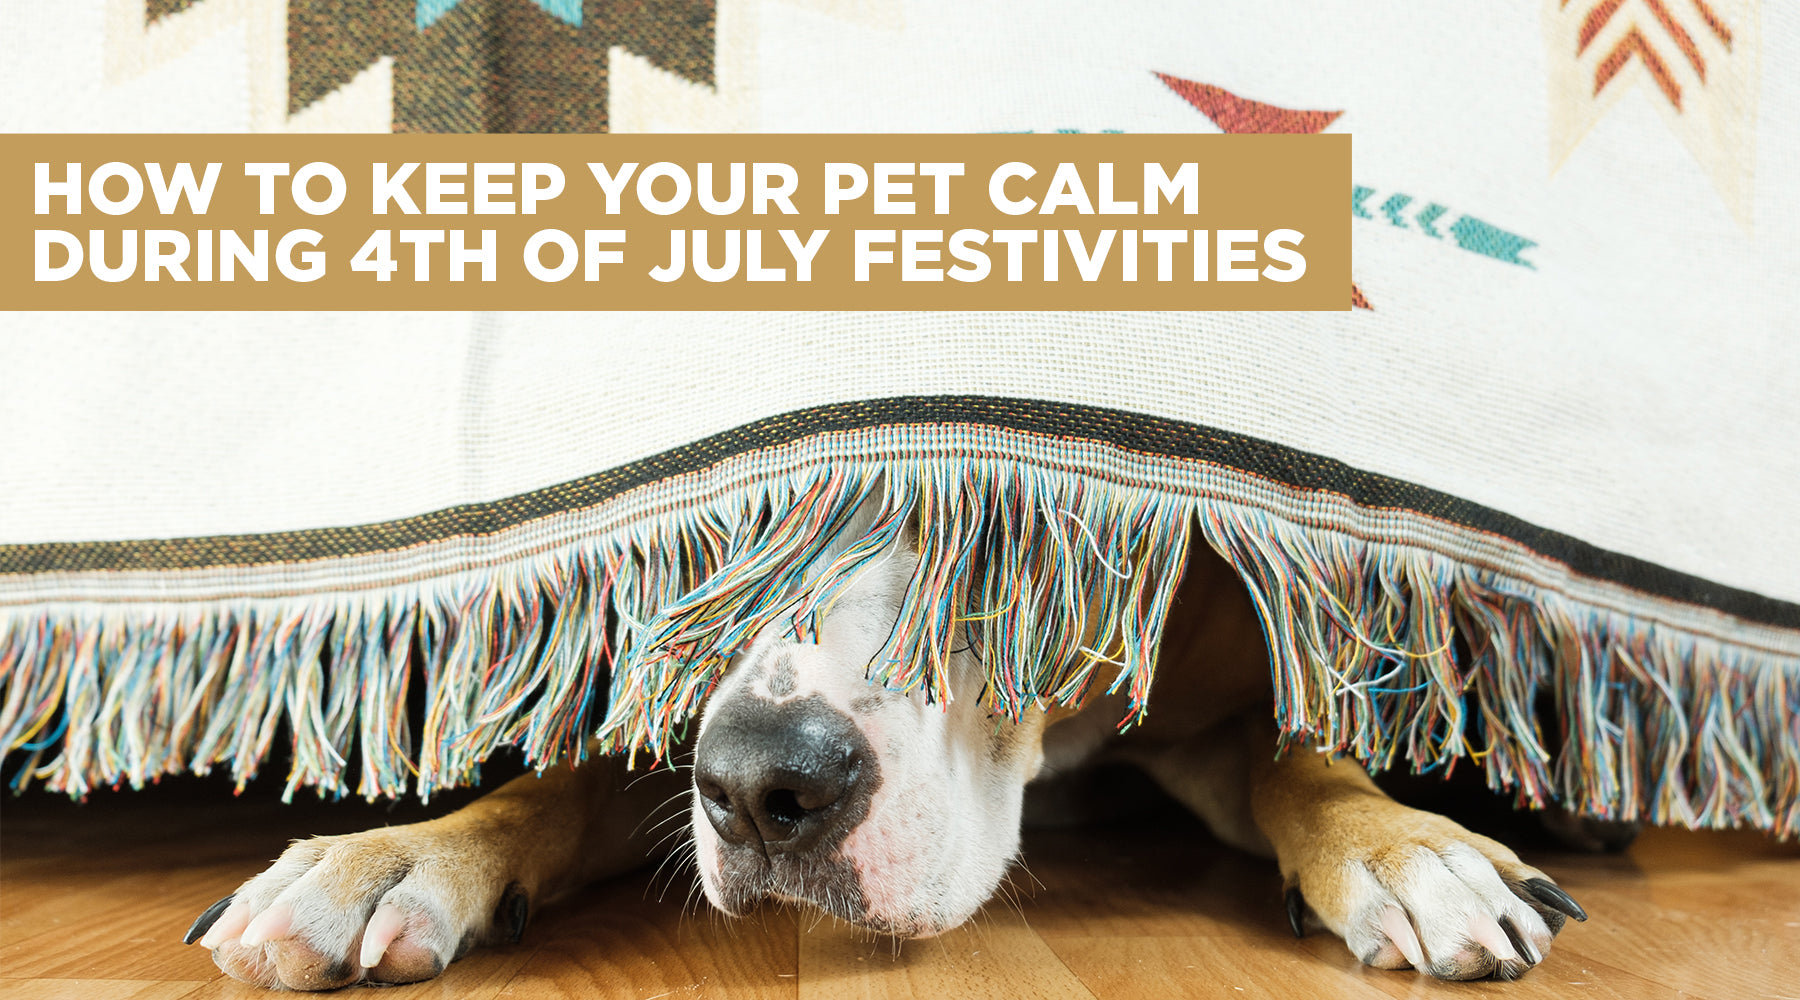 How to Keep Your Pets Calm During 4th of July Festivities